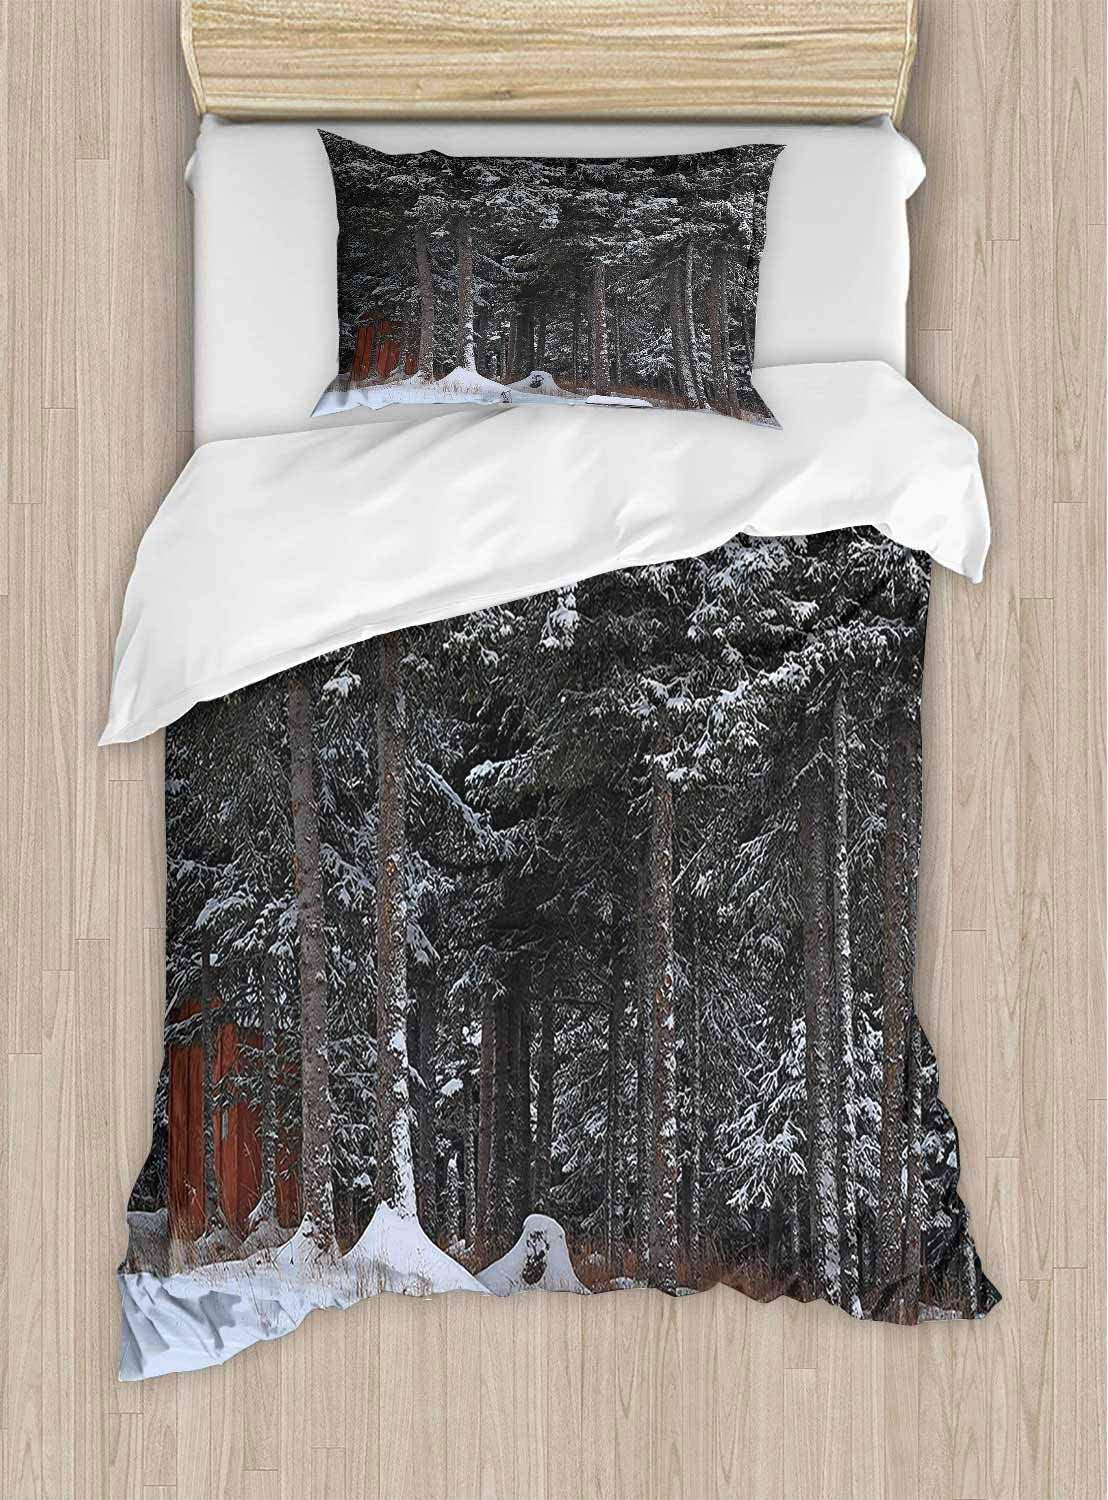 PRUNUSHOME Extra Soft Luxury Hotel Sheets in Snow Little Lumberjack Cottage Dark Green and White Long Durable X-Long Twin